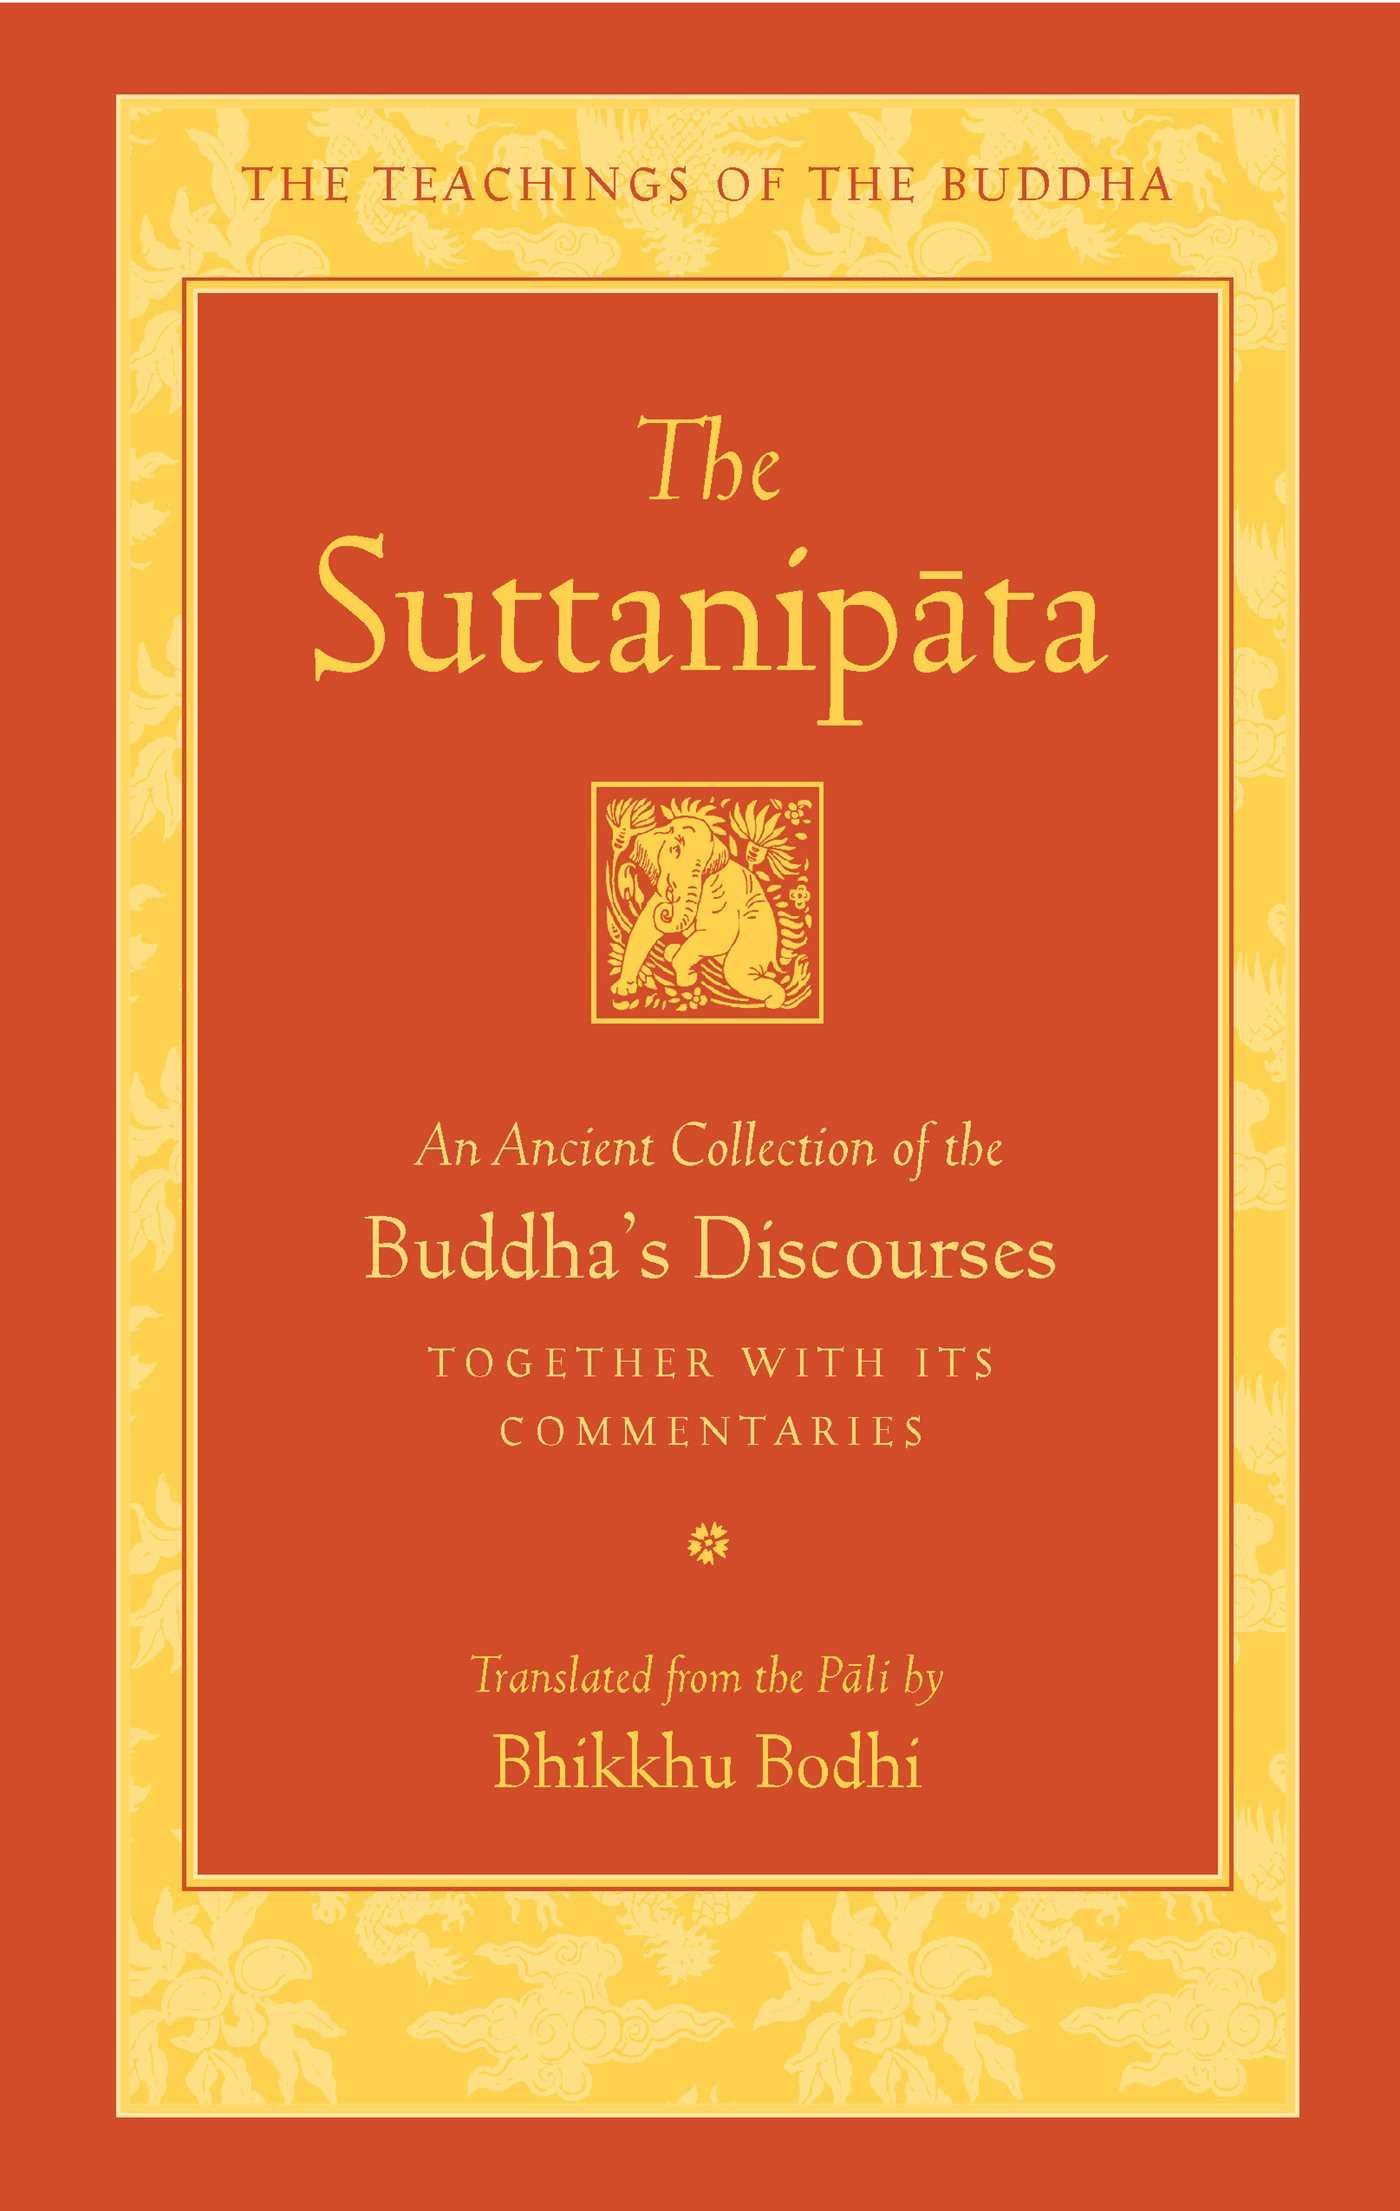 The Suttanipata: An Ancient Collection of the Buddha's Discourses Together with Its Commentaries